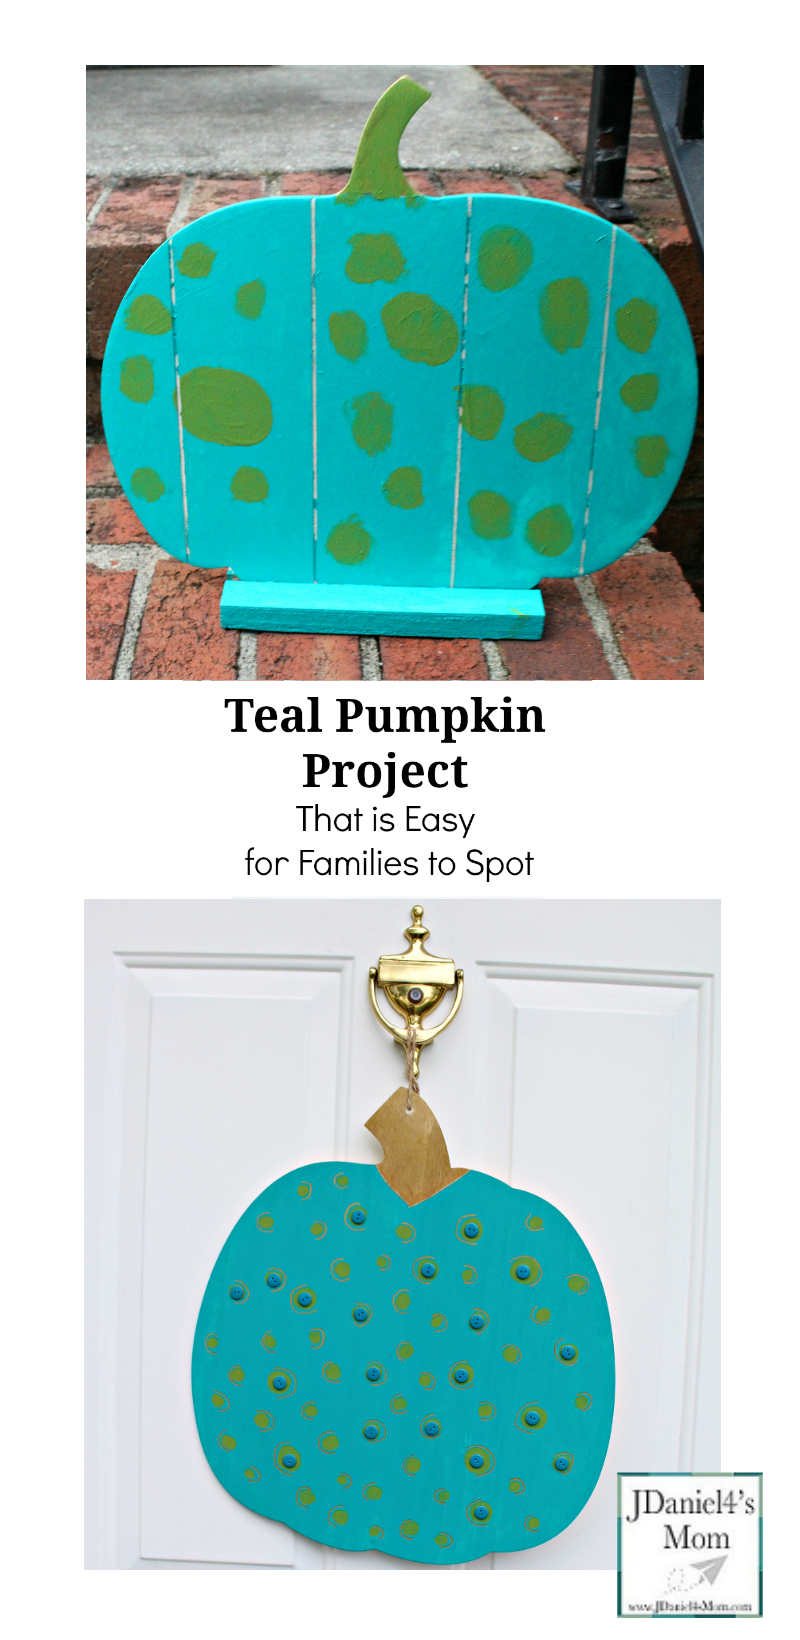 Teal Pumpkin Project That is Easy for Families to Spot - Your children at home or students at school can decorate wooden pumpkins with teal paint and fun craft supplies.